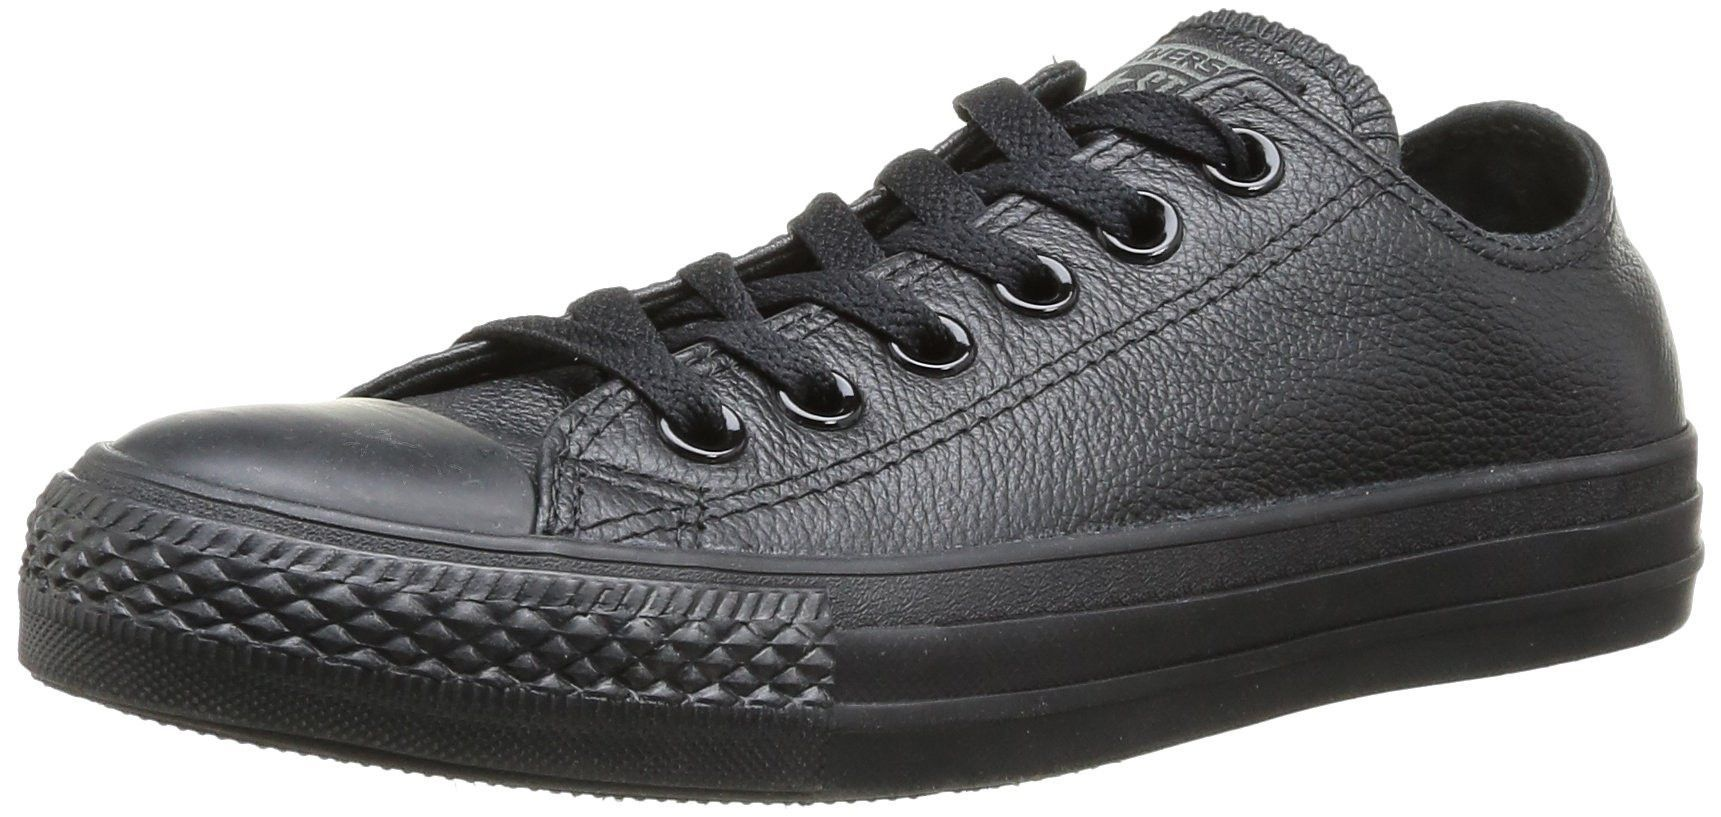 ee2b922dac21 1T865 - Chuck Taylor All Star Low Leather